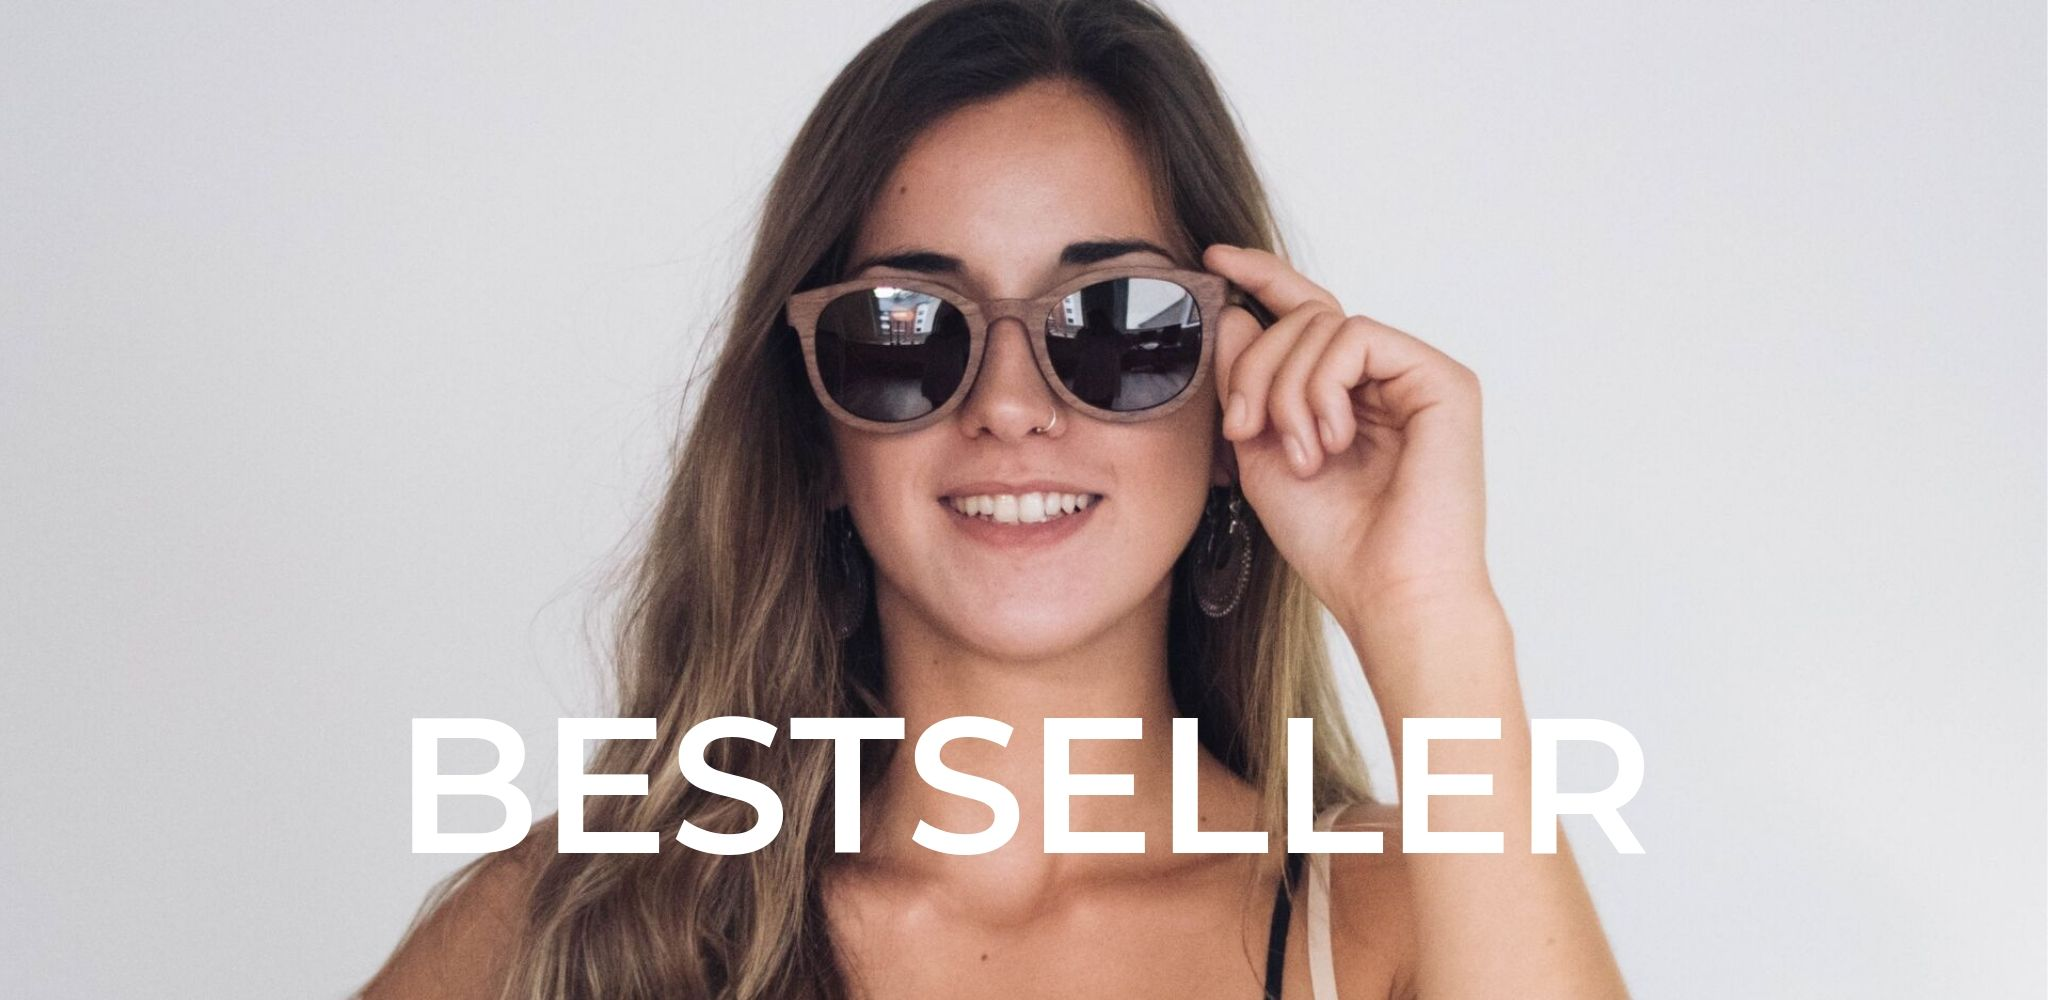 Bestseller Holz Sonnenbrillen für Damen & Herren | WOODEN SHADE | Wood Sunglasses for Men & Women